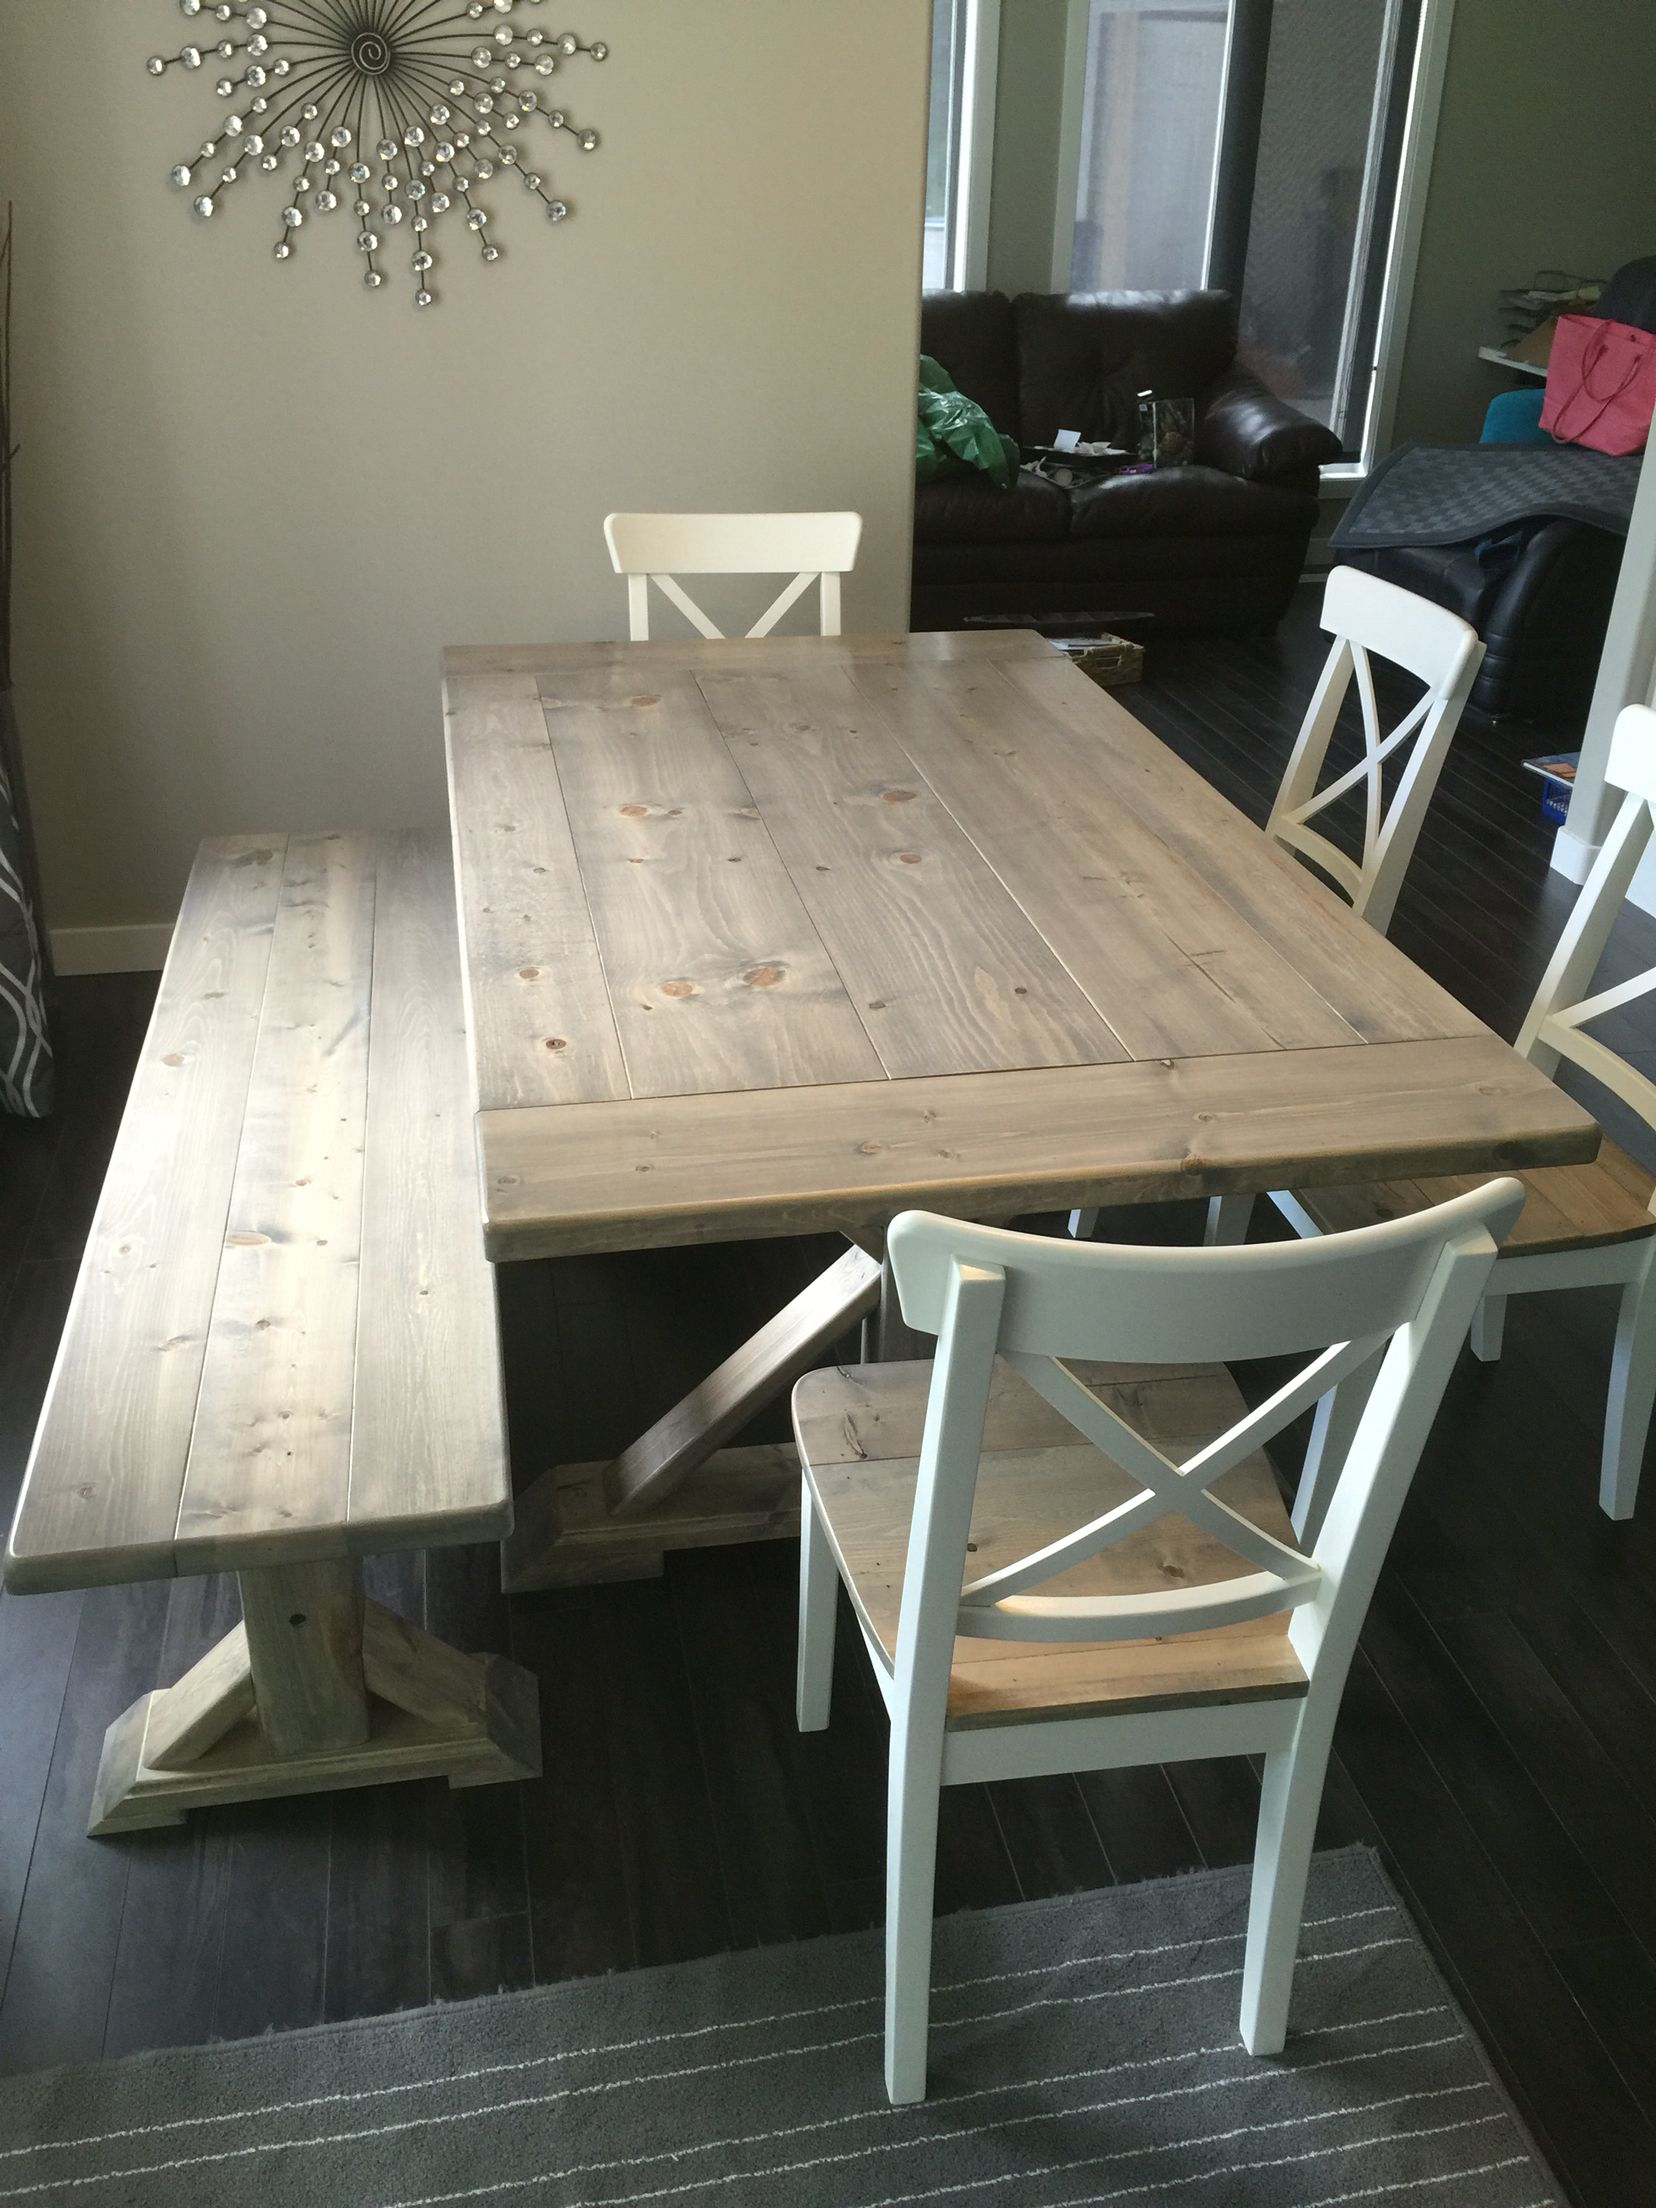 68 X38 Harvest Table With 4 Chairs And Matching Bench In A Grey